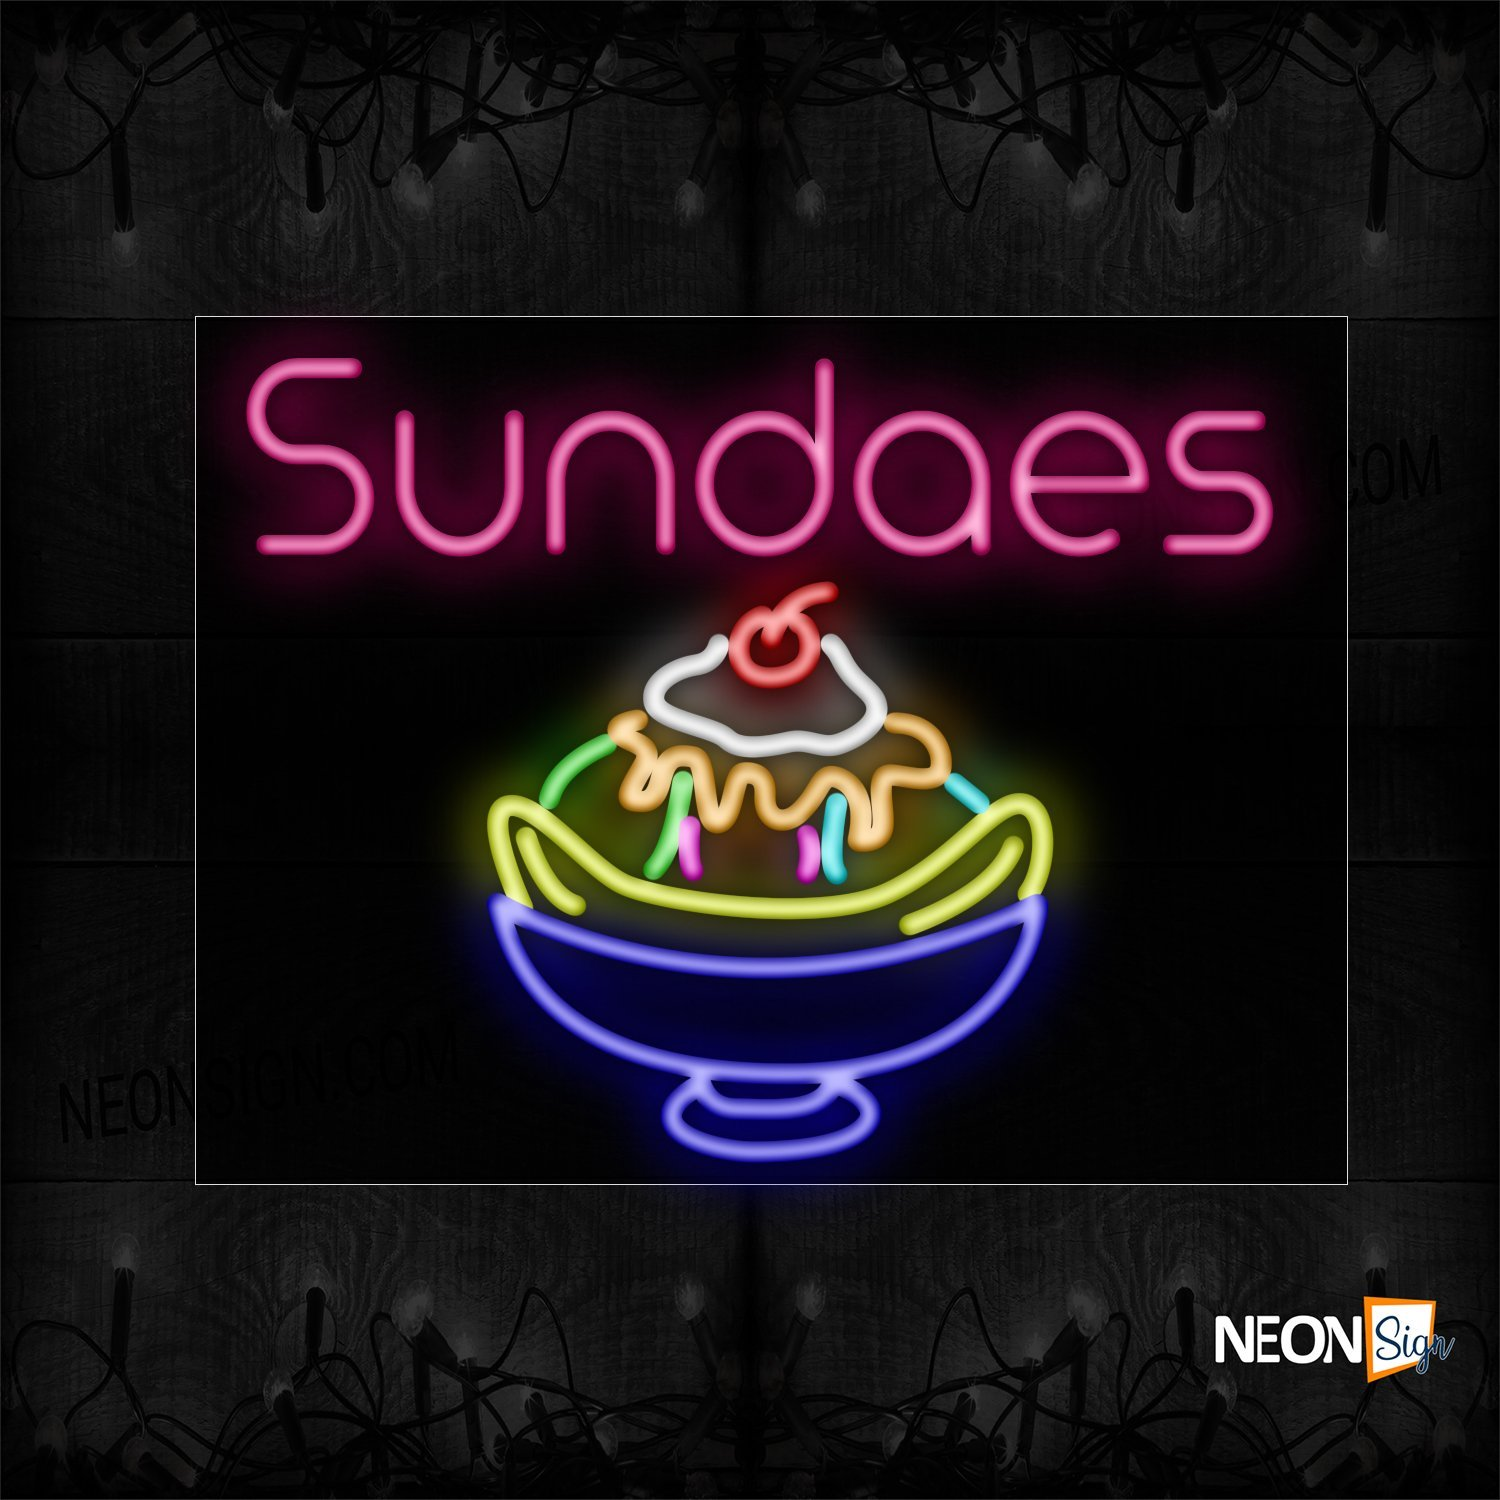 Image of 11783 Sundaes With Logo Neon Signs_24x31 Black Backing